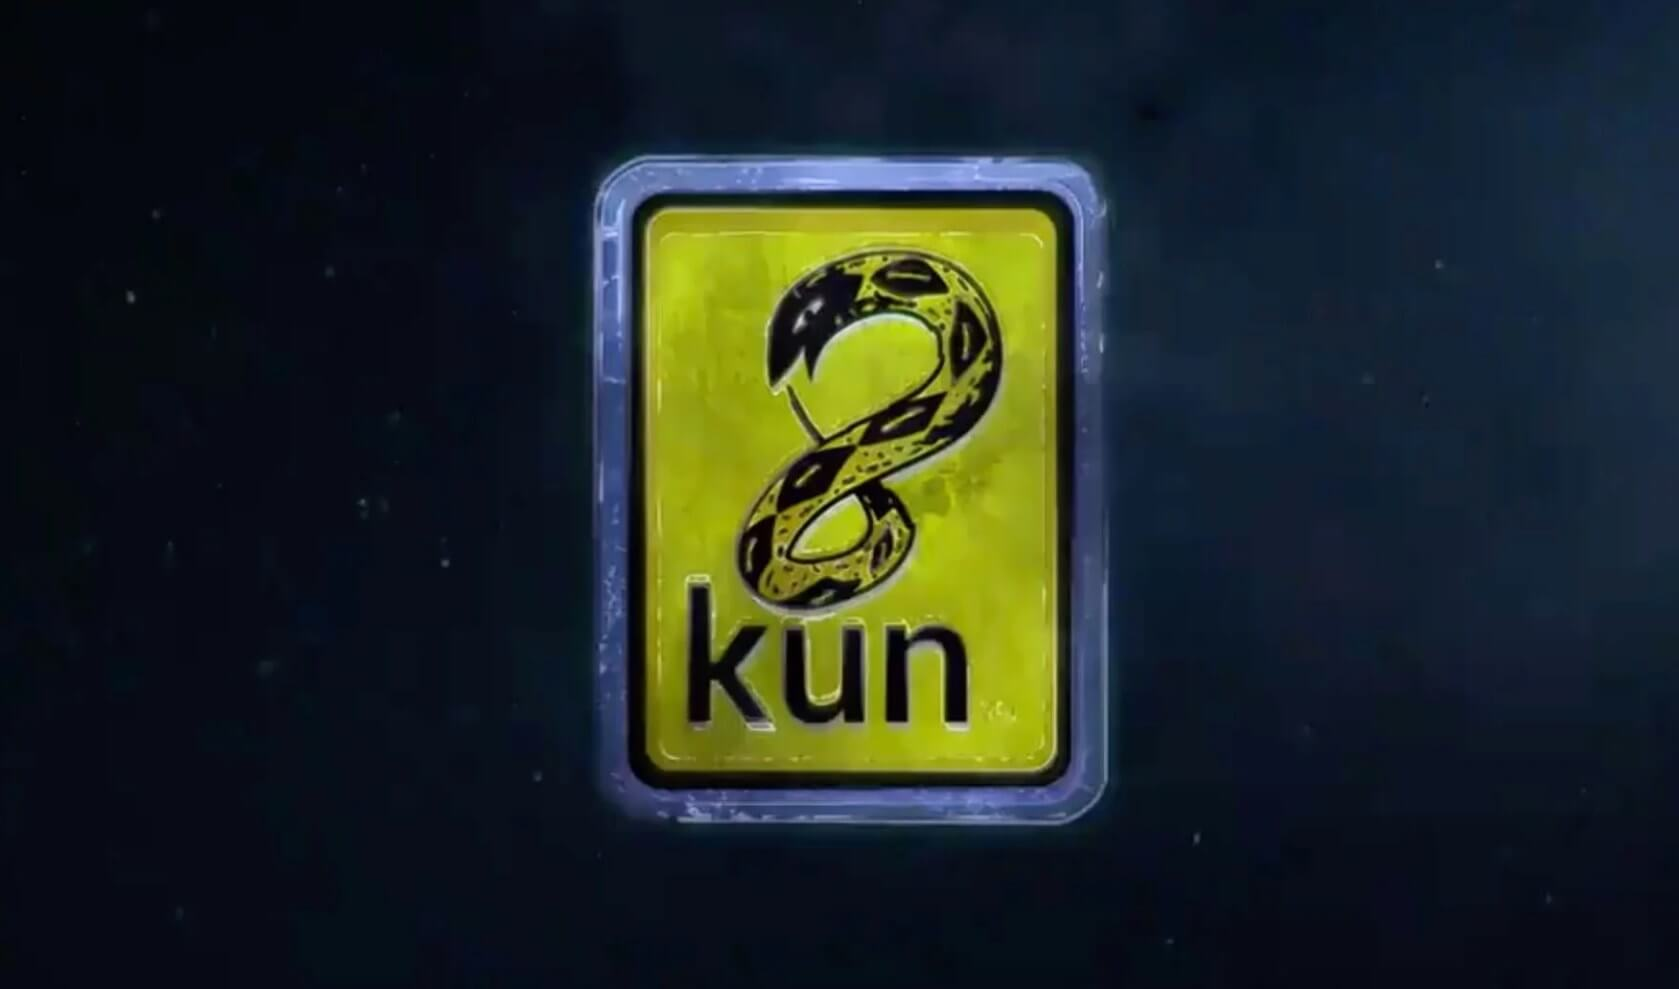 8chan is relaunching under a new name: 8kun